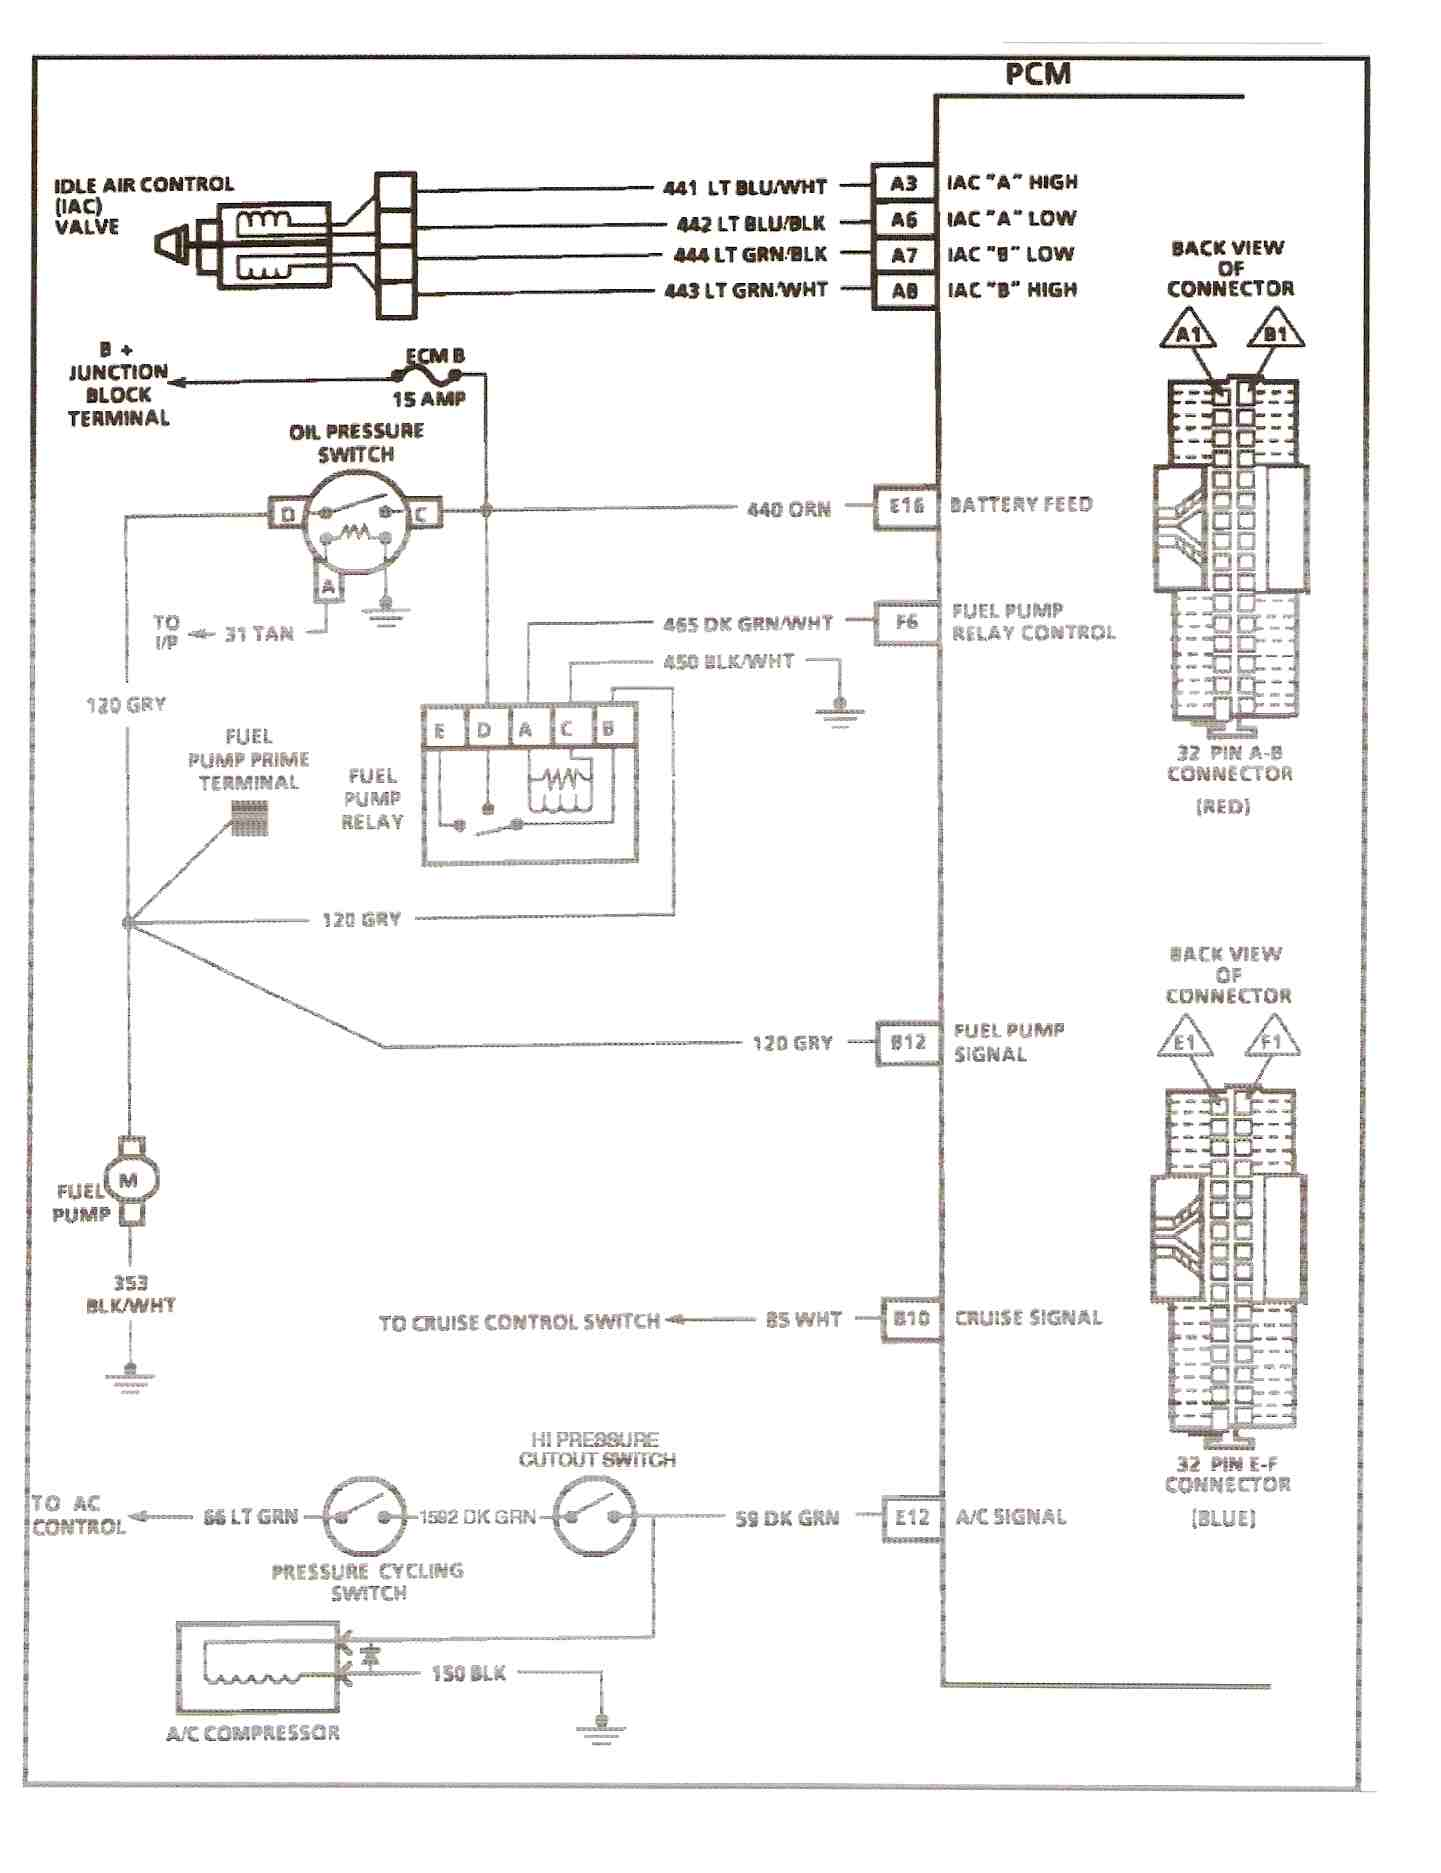 1990 Chevy Corsica Ignition Switch Wiring Diagram 49 93 Silverado 2008 09 20 175045 Scan0006 94 Chevrolet Engine Typical